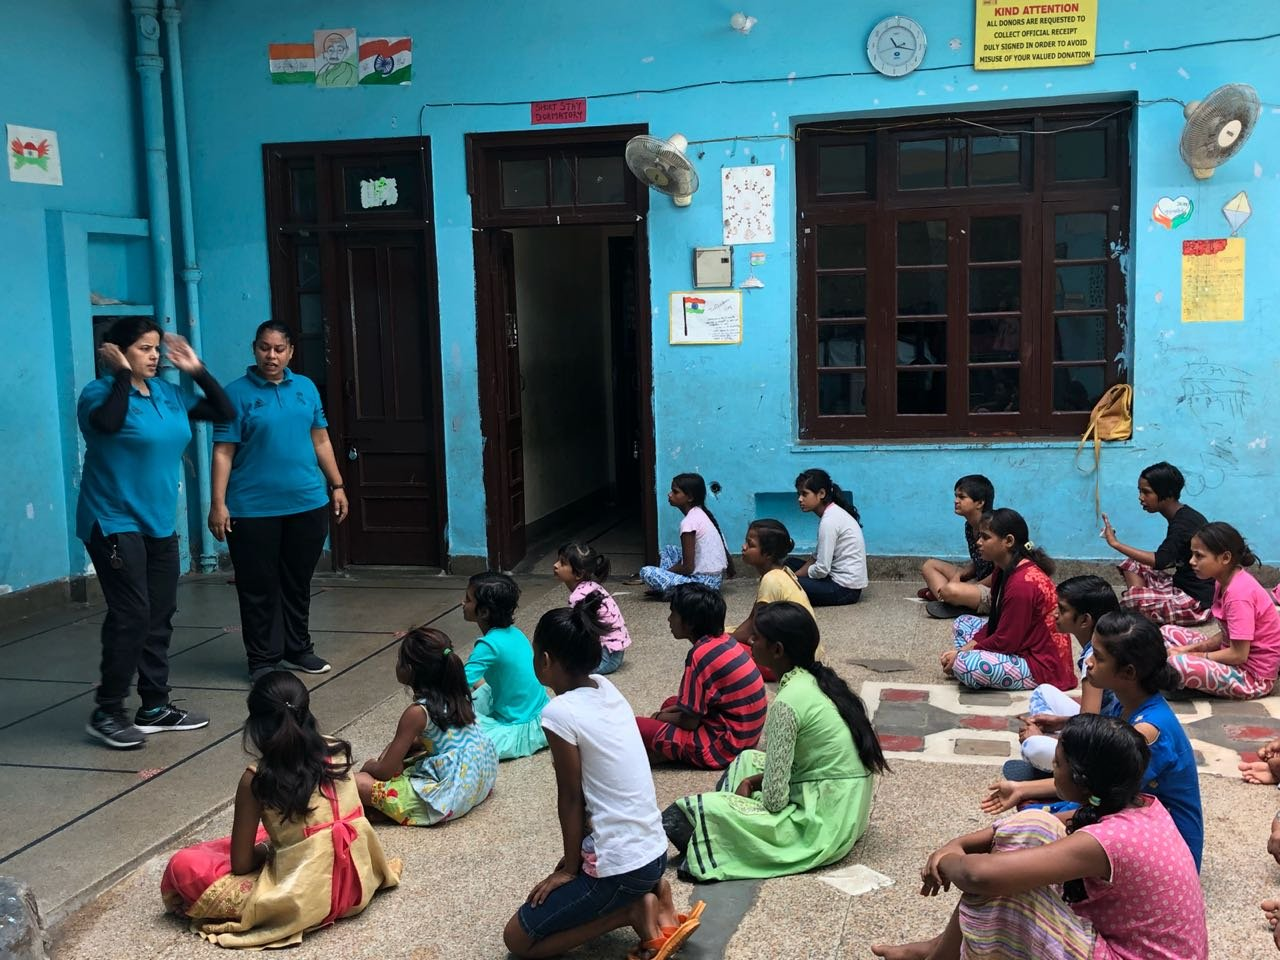 Children being taught at a charity centre in India